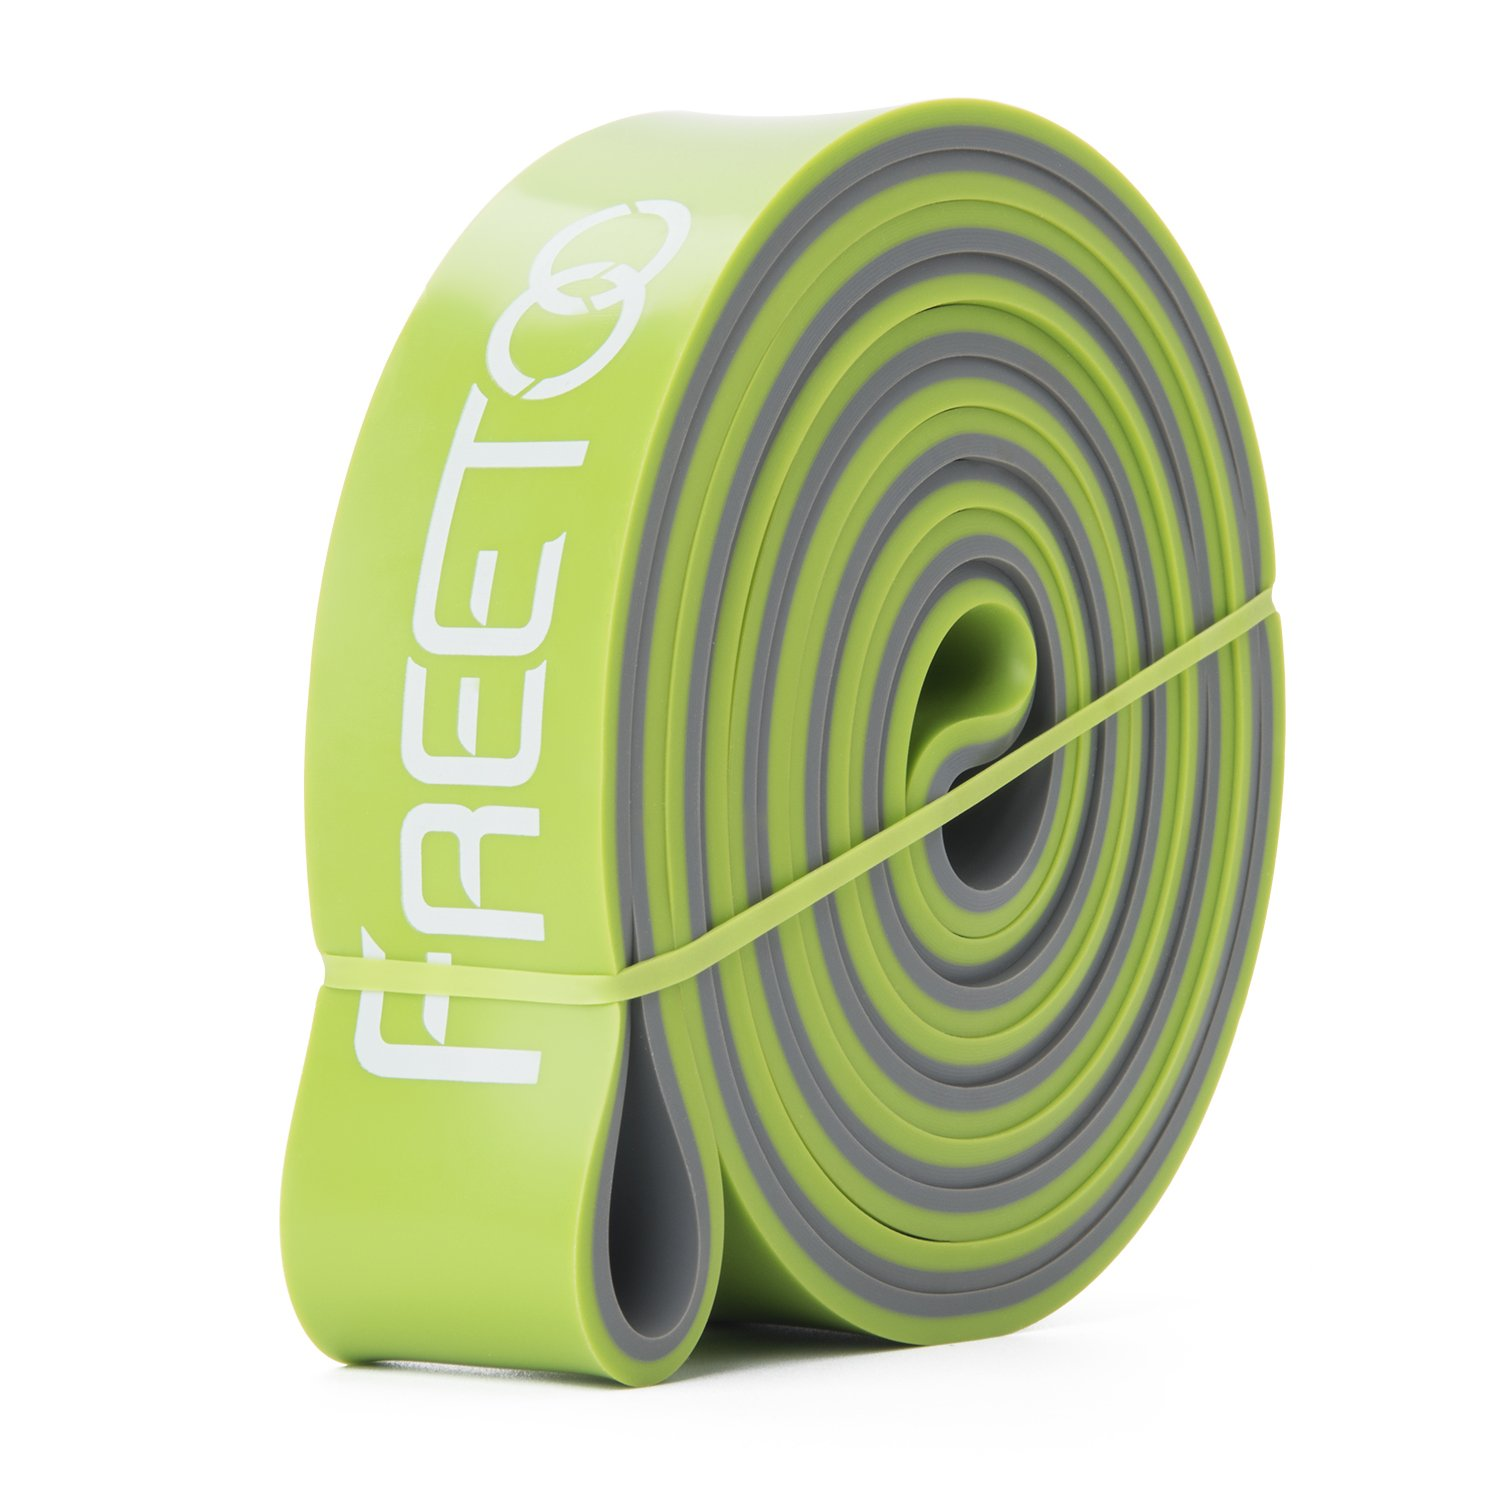 FREETOO Pull Up Assist Bands - Resistance Bands Workout Exercise Bands Stretch Bands 100% Natural Latex Best for Body Stretching,Pilates,Resistance Training,Cross Fitness,Yoga and Home Fitness by FREETOO